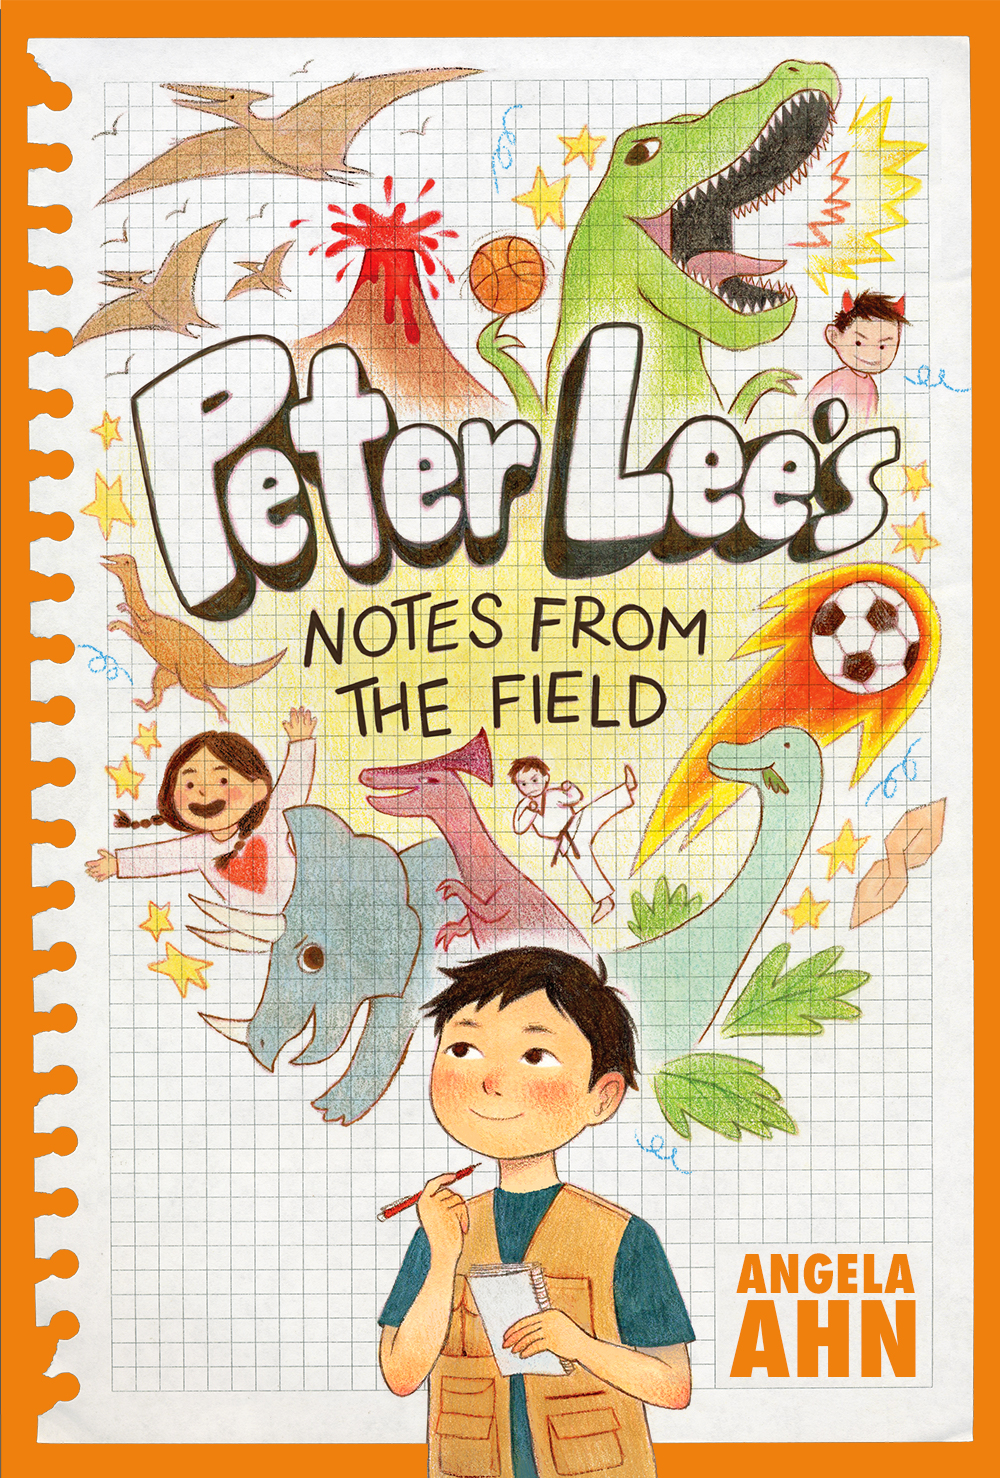 Peter Lee's Notes From the Field book cover